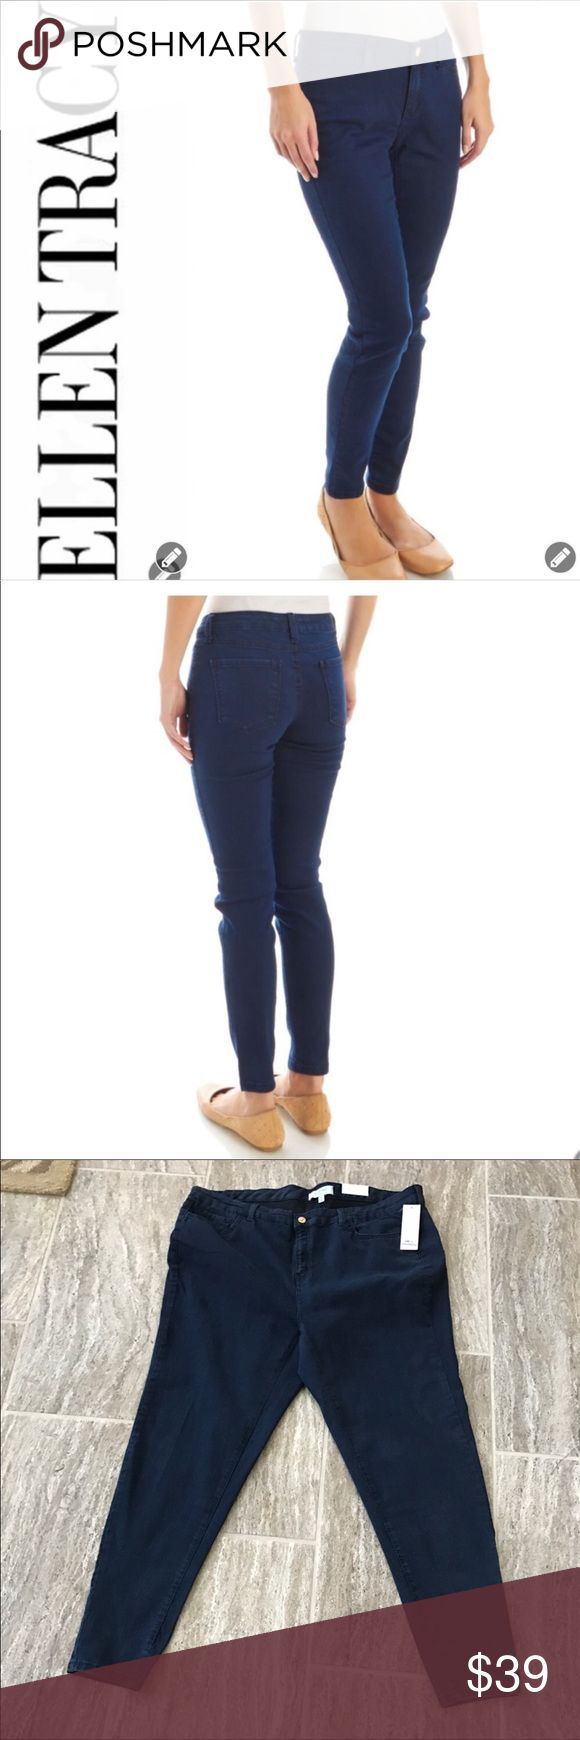 "NWT Ellen Tracy The Skinny Jeans NWT Ellen Tracy The Skinny Jeans are stylish featured in a deep dyed blue denim. These lightweight jeans feature one gold button closure with front fly zip. Classic five pocket design. Tonal stitching. 77%Cotton, 22% Polyester & 1% elastane. These Jeans have a nice give in them. These Jeans are well made and will become a staple piece in your wardrobe. They can easily be dressed up or down. Rise 11"" Inseam 29"" Leg opening 14"". Smoke Free Home. Ellen Tracy…"